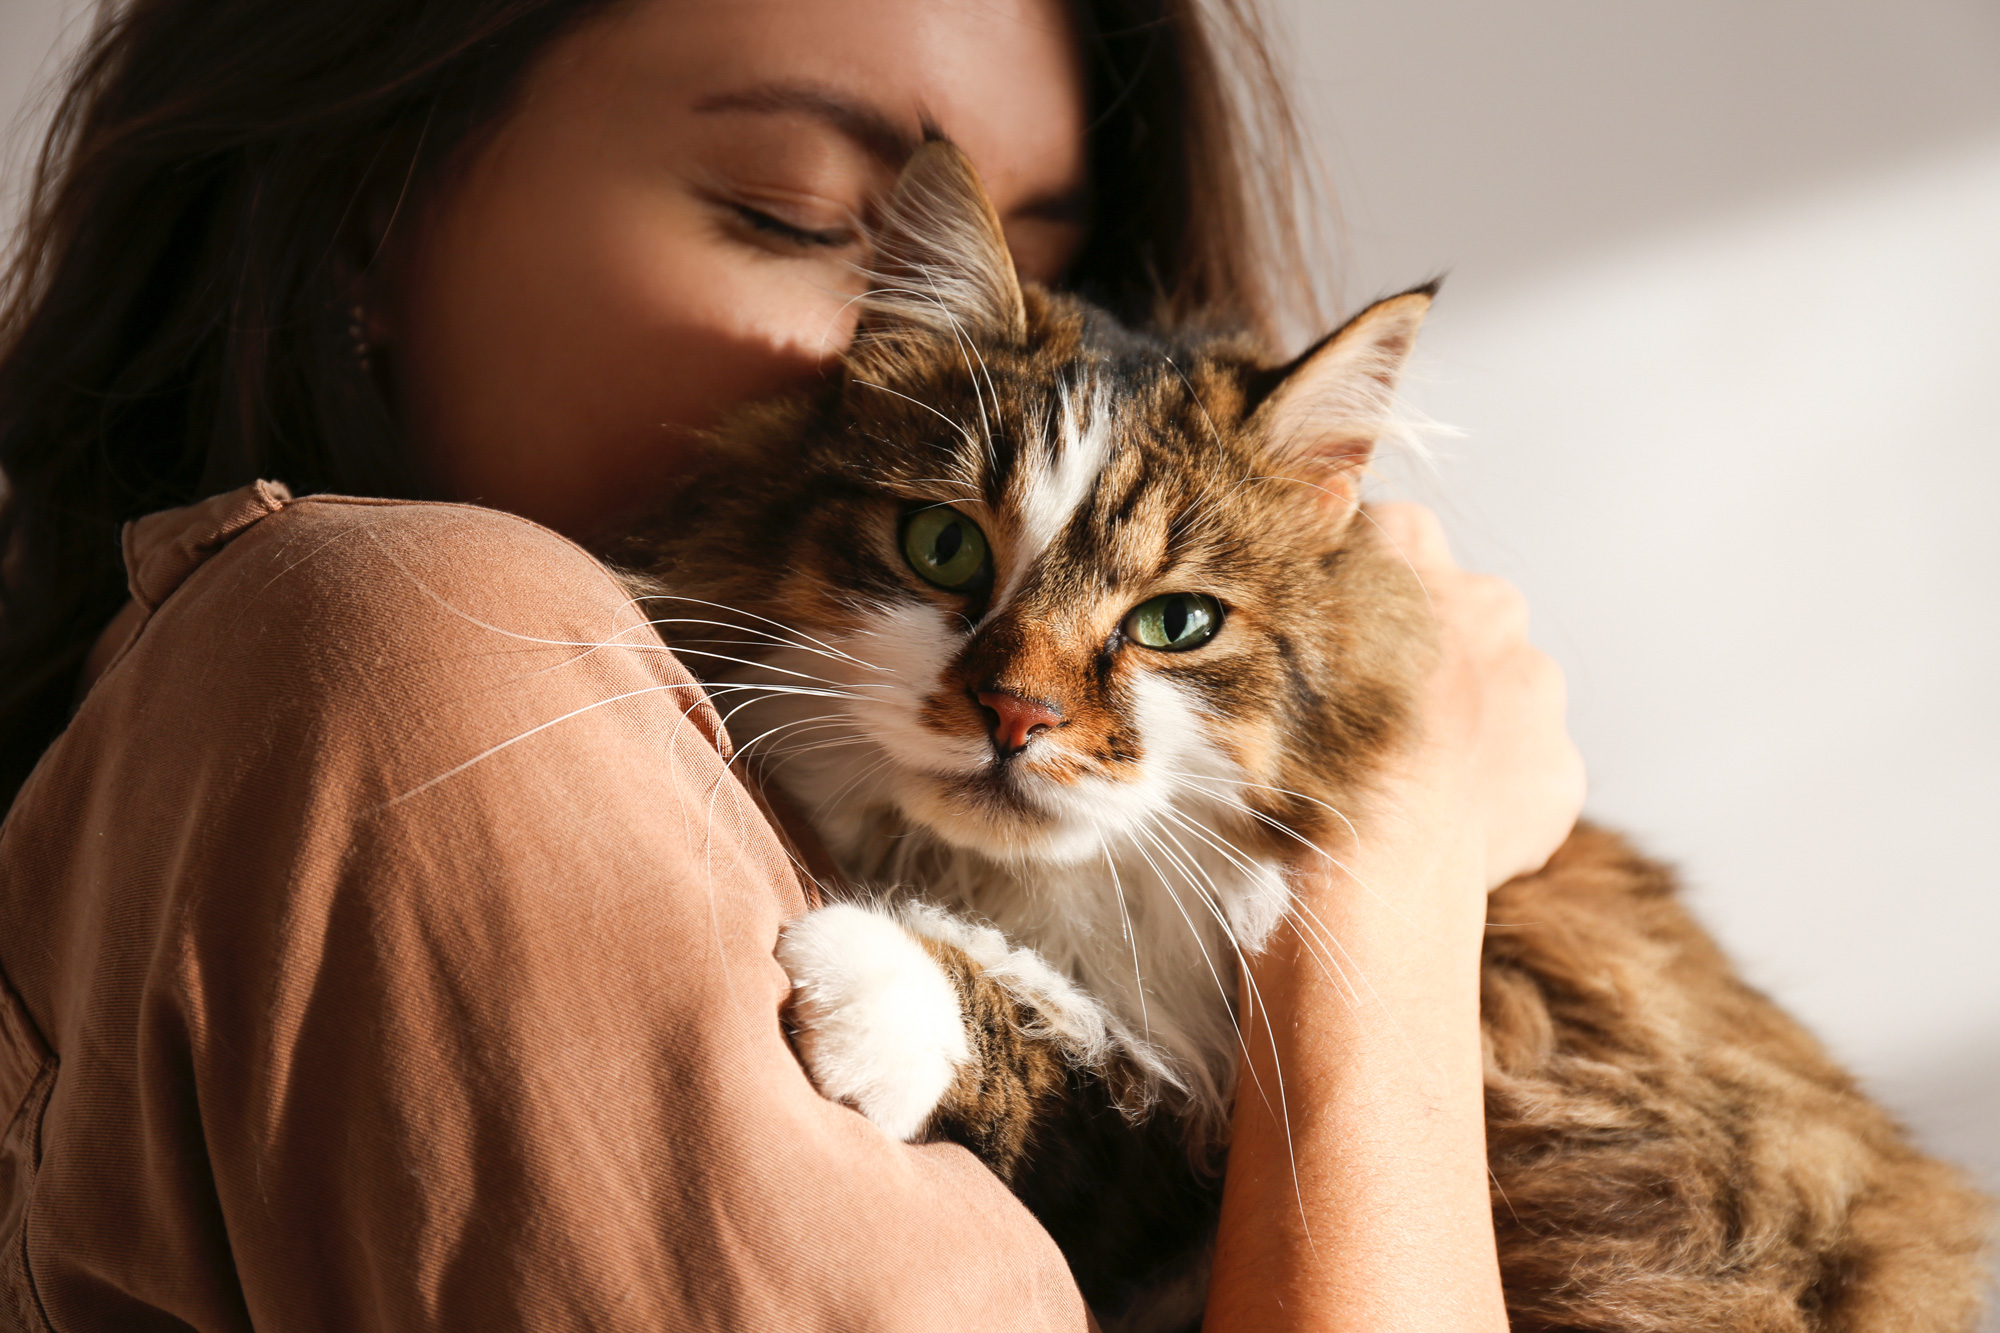 close-up of woman cuddling a tabby cat